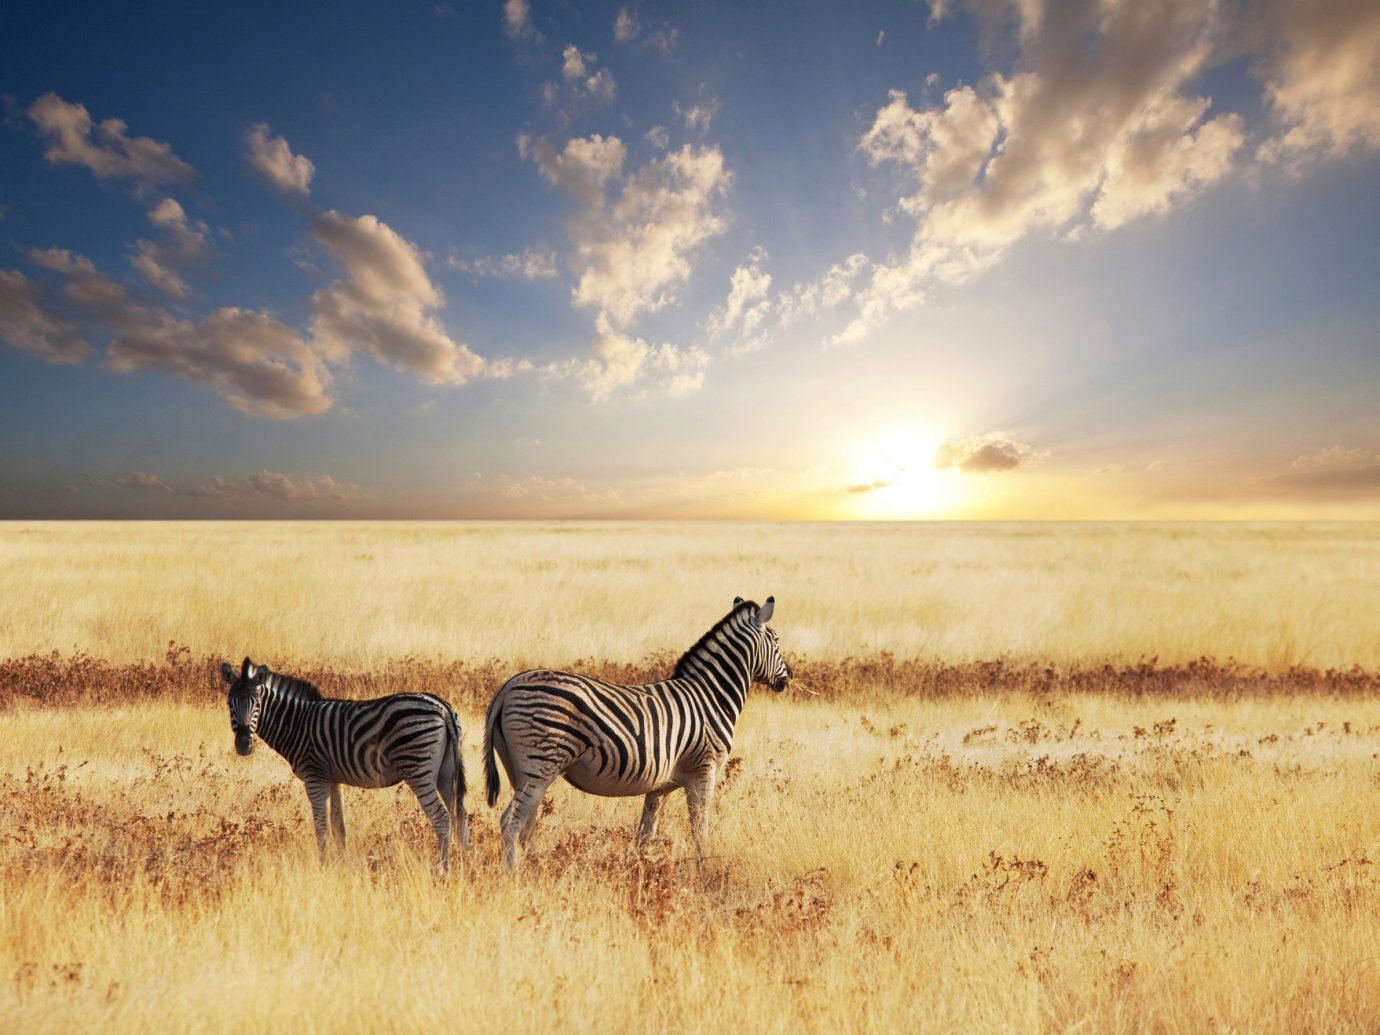 Style + Design sky grass outdoor zebra field animal plain grassland steppe savanna prairie horizon natural environment grass family morning landscape group mammal rural area horse like mammal Sunset herd evening sunrise agriculture grassy ecoregion Safari day clouds